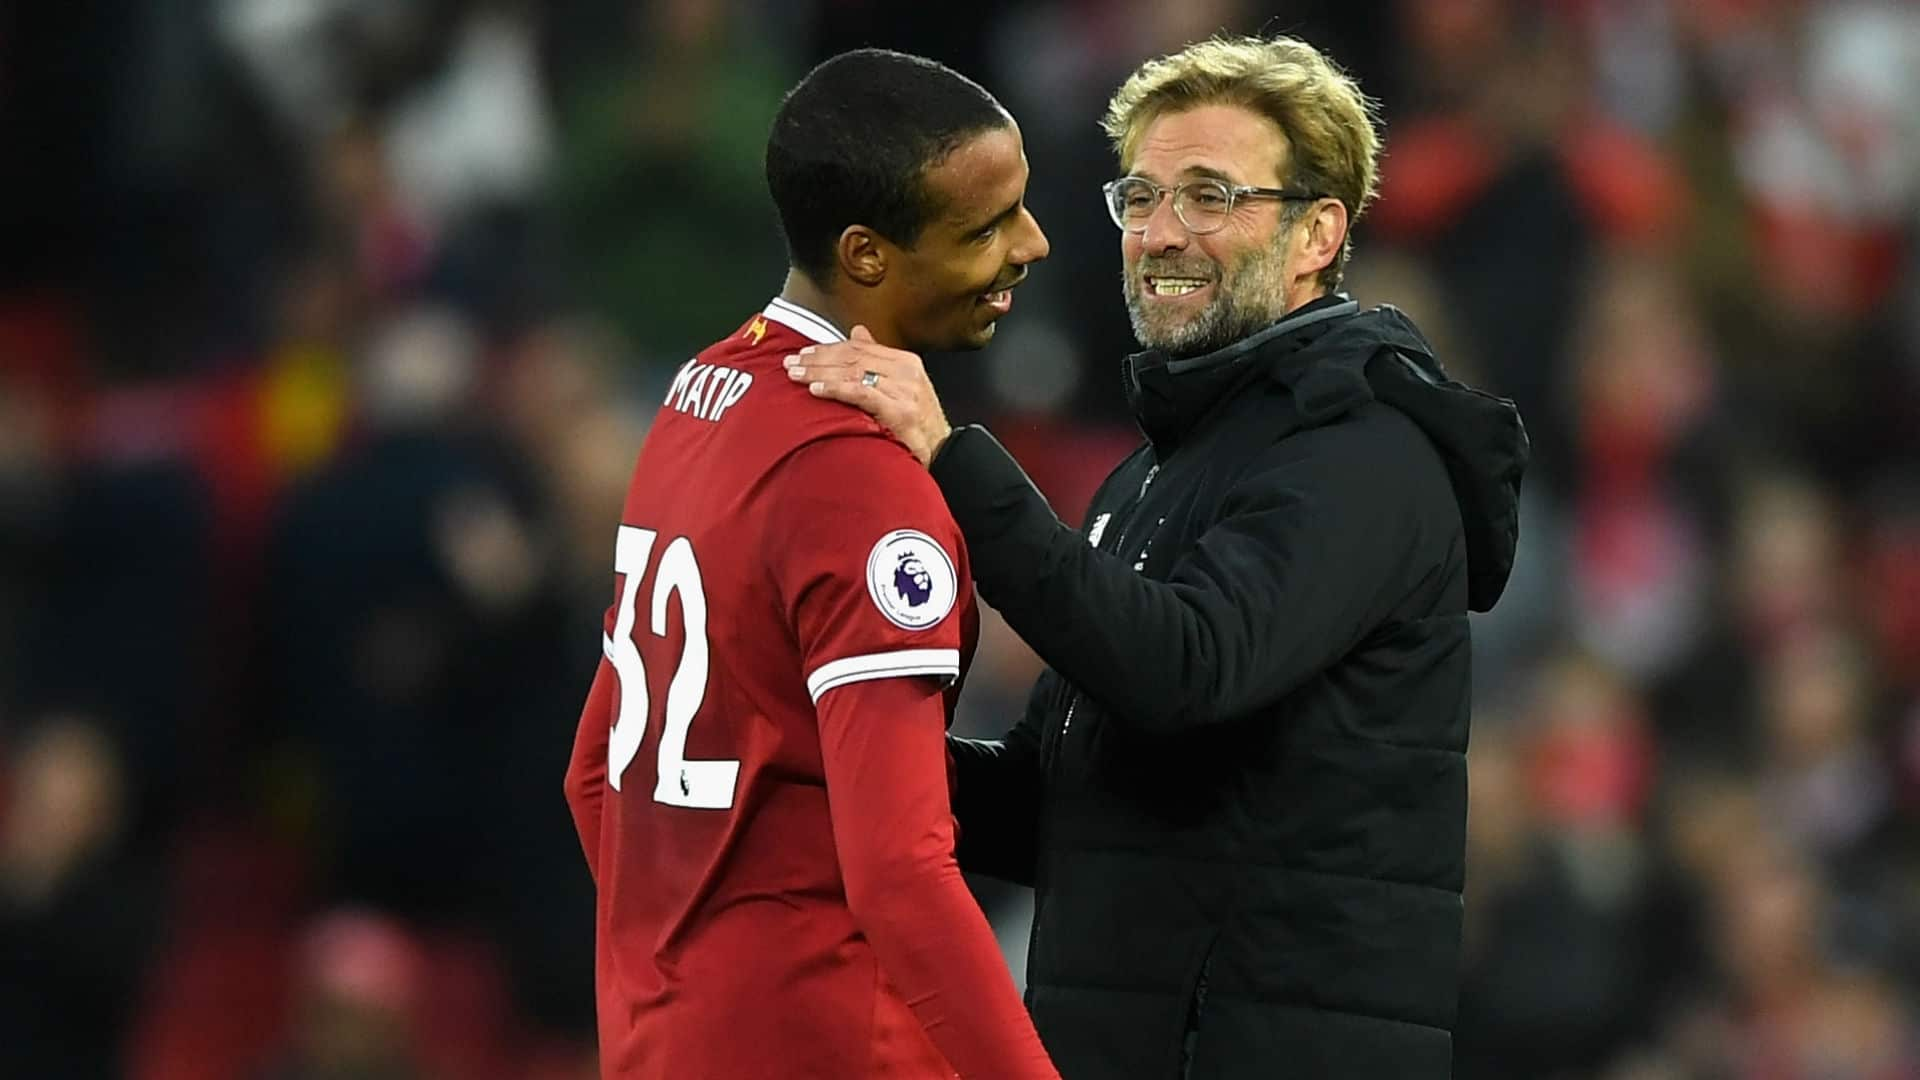 Klopp and Joel Matip